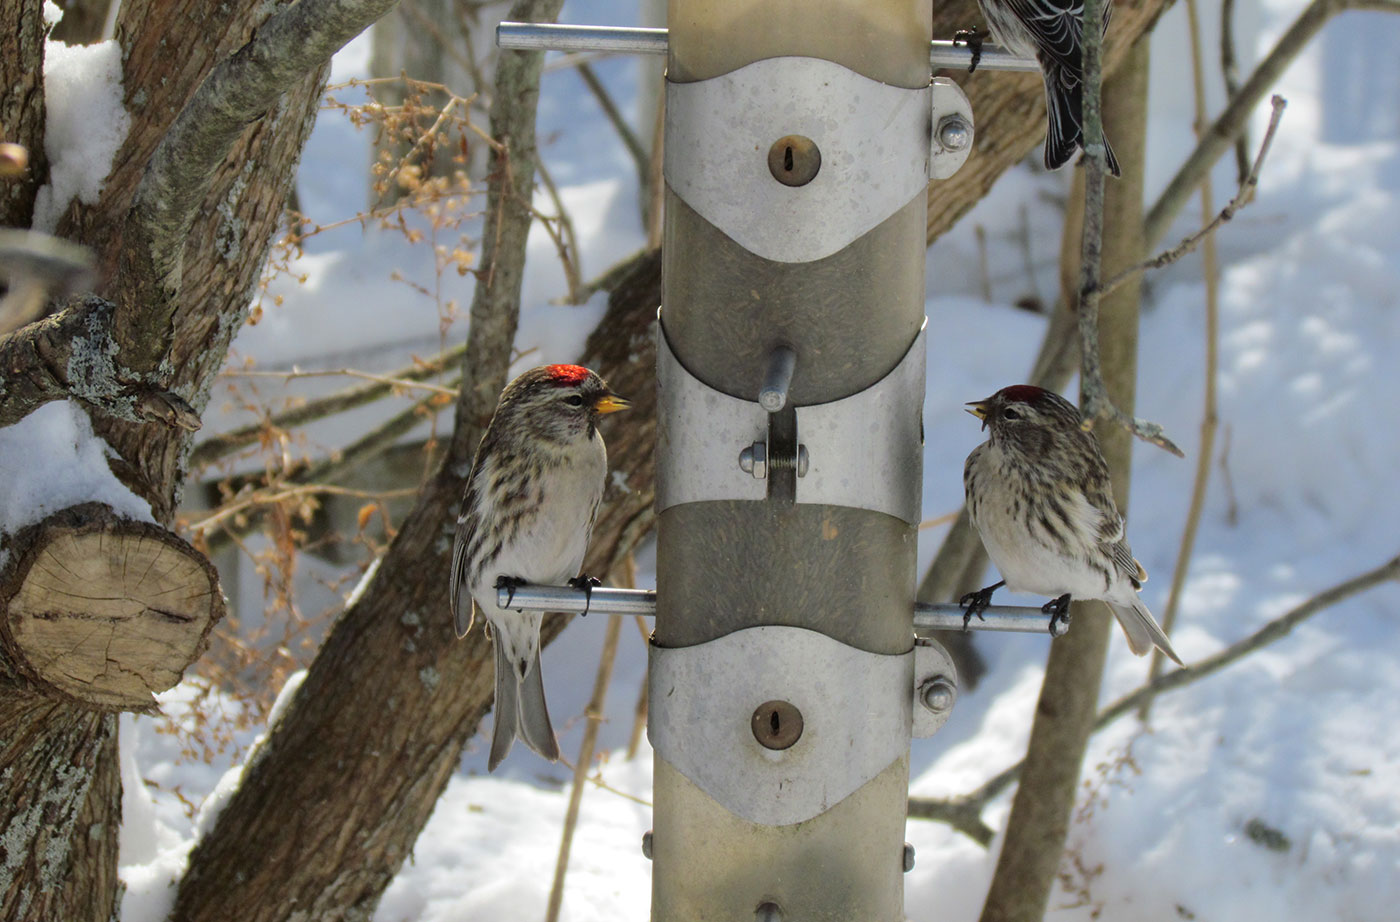 Common Redpolls at bird feeder